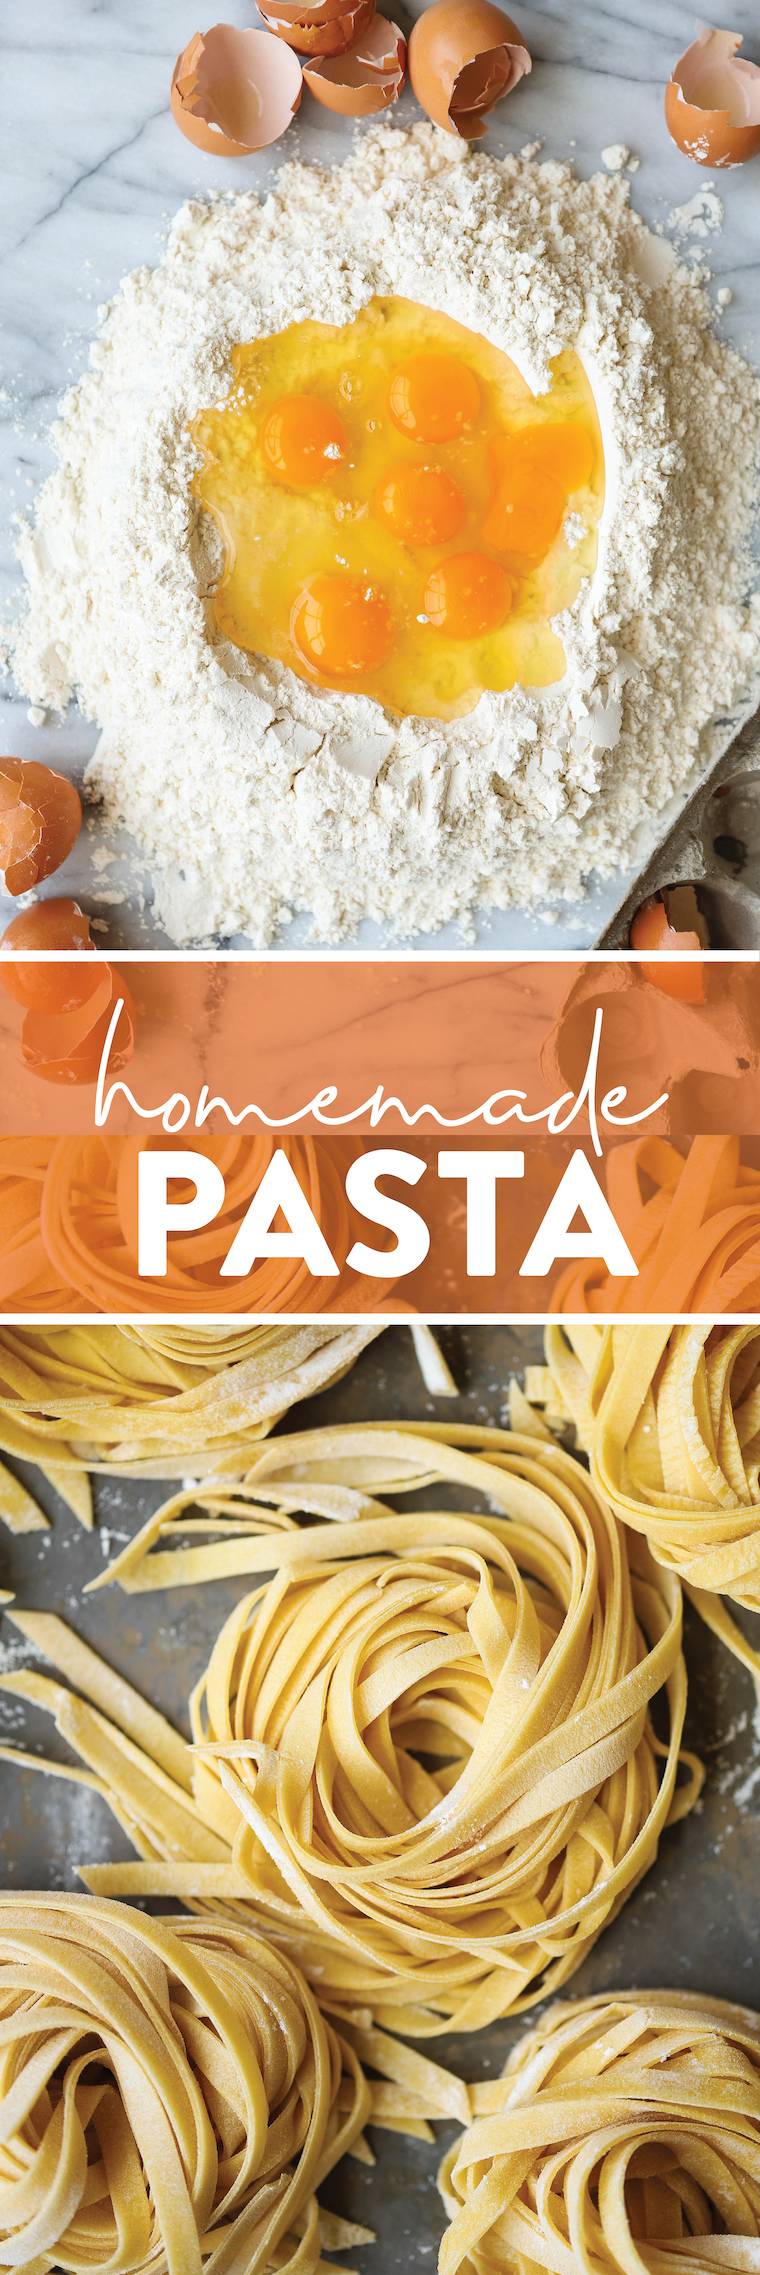 Homemade pasta - fresh homemade pasta dough!  All you need are 4 ingredients and it's super easy (and versatile).  Perfect for any shape!